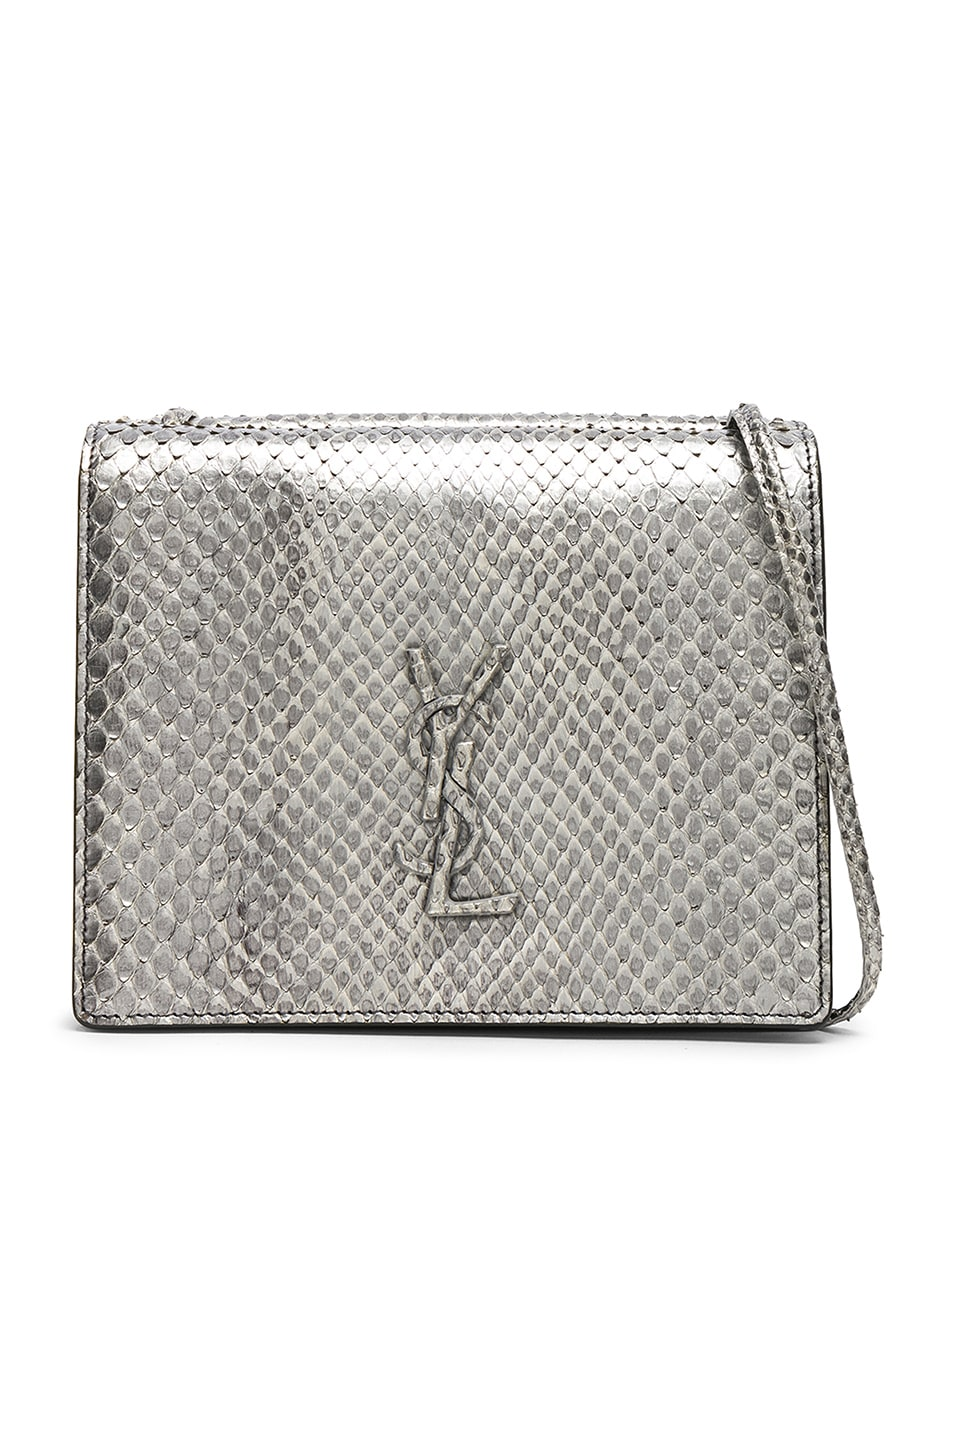 ef477075134 Image 1 of Saint Laurent Python Embossed Vintage YSL Monogramme Bag in  Anthracite & Black